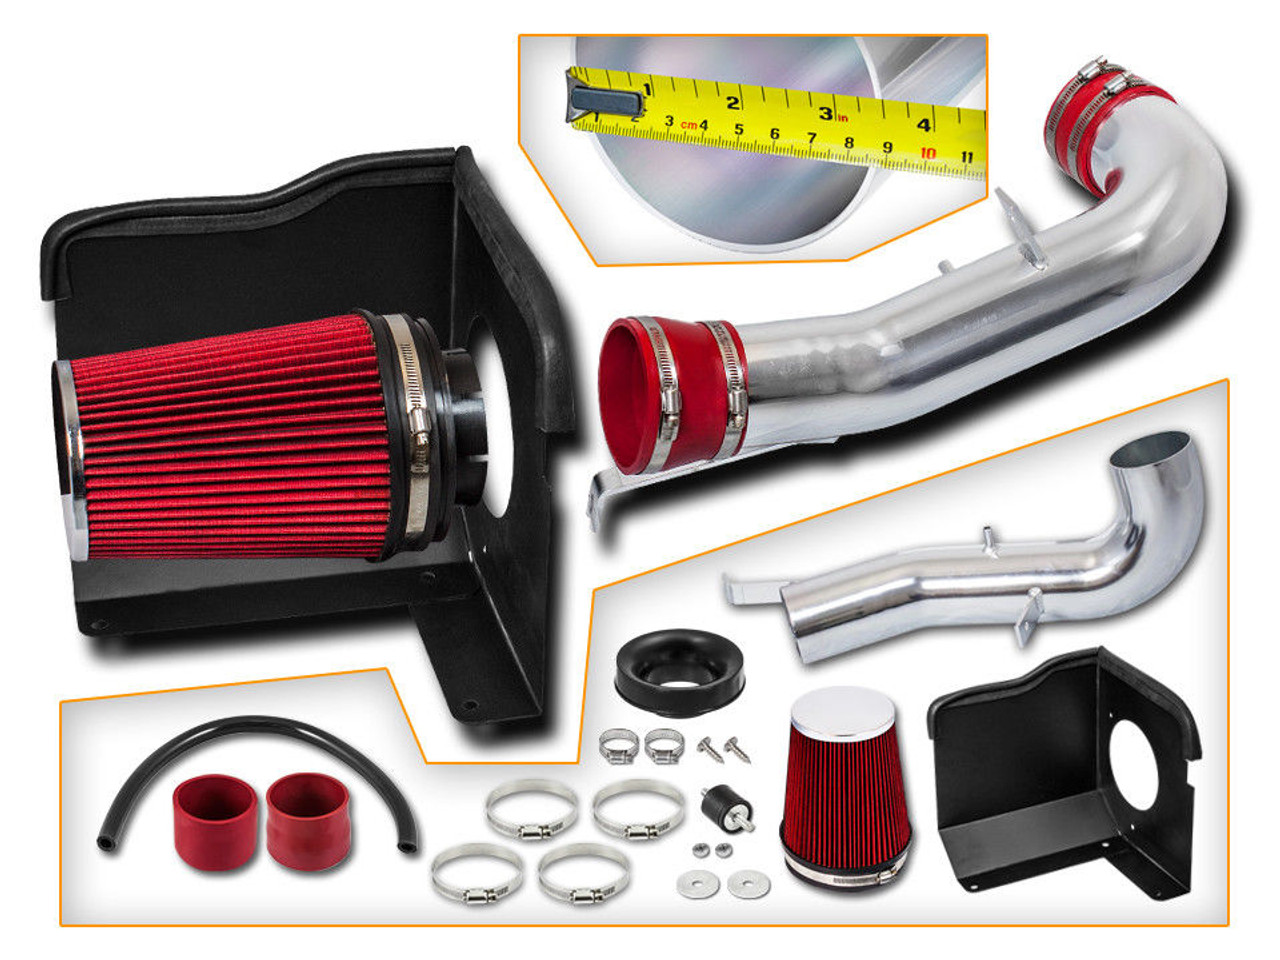 BLACK SILVER 2009-2014 GMC YUKON 4.8L 5.3L DENALI XL 6.2L V8 COLD AIR INTAKE KIT